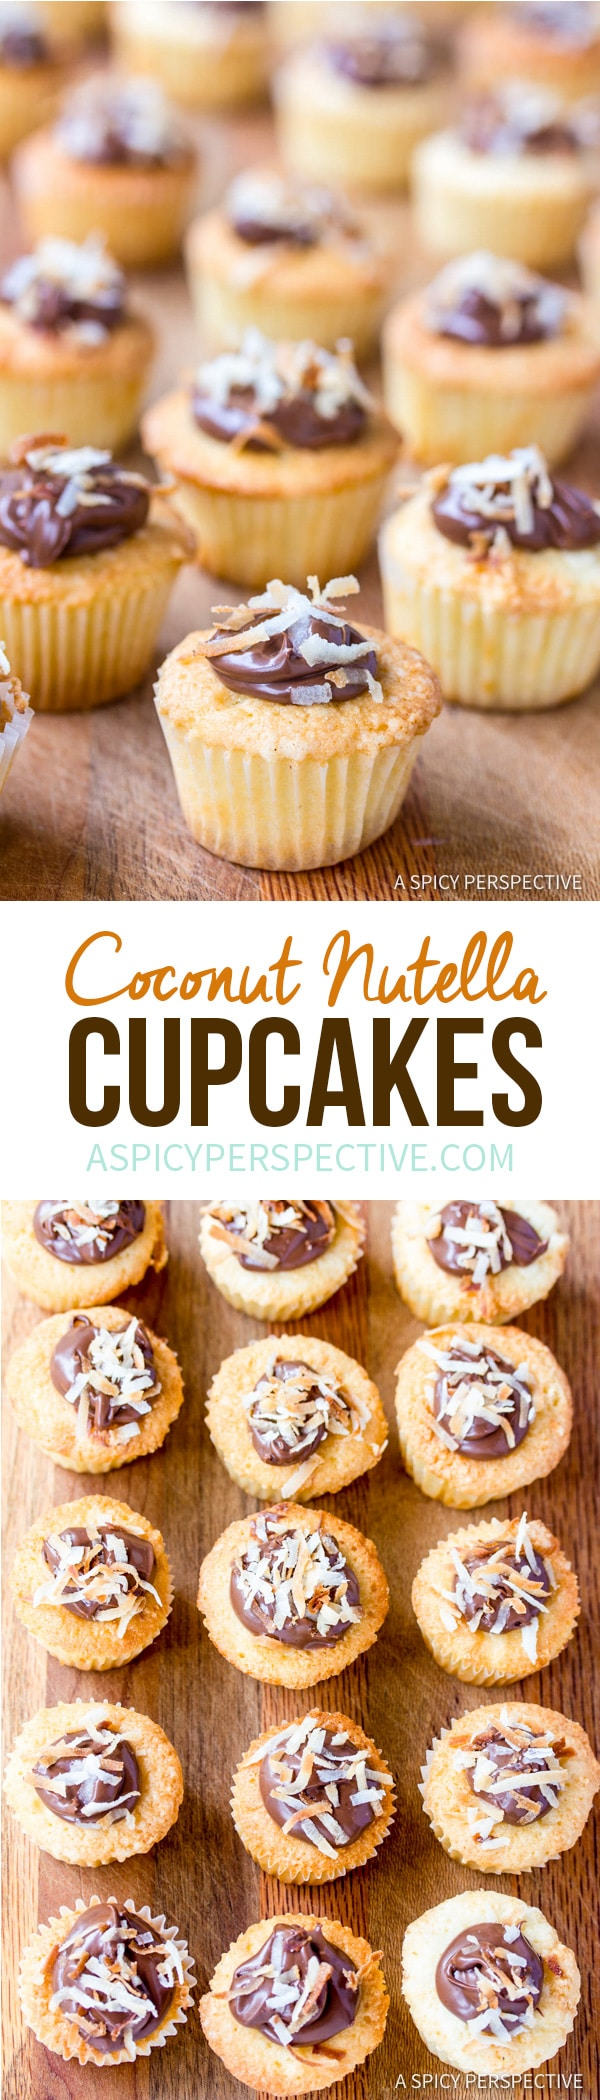 Itty bitty decadent Coconut Nutella Cupcakes . One-bite treats to ...